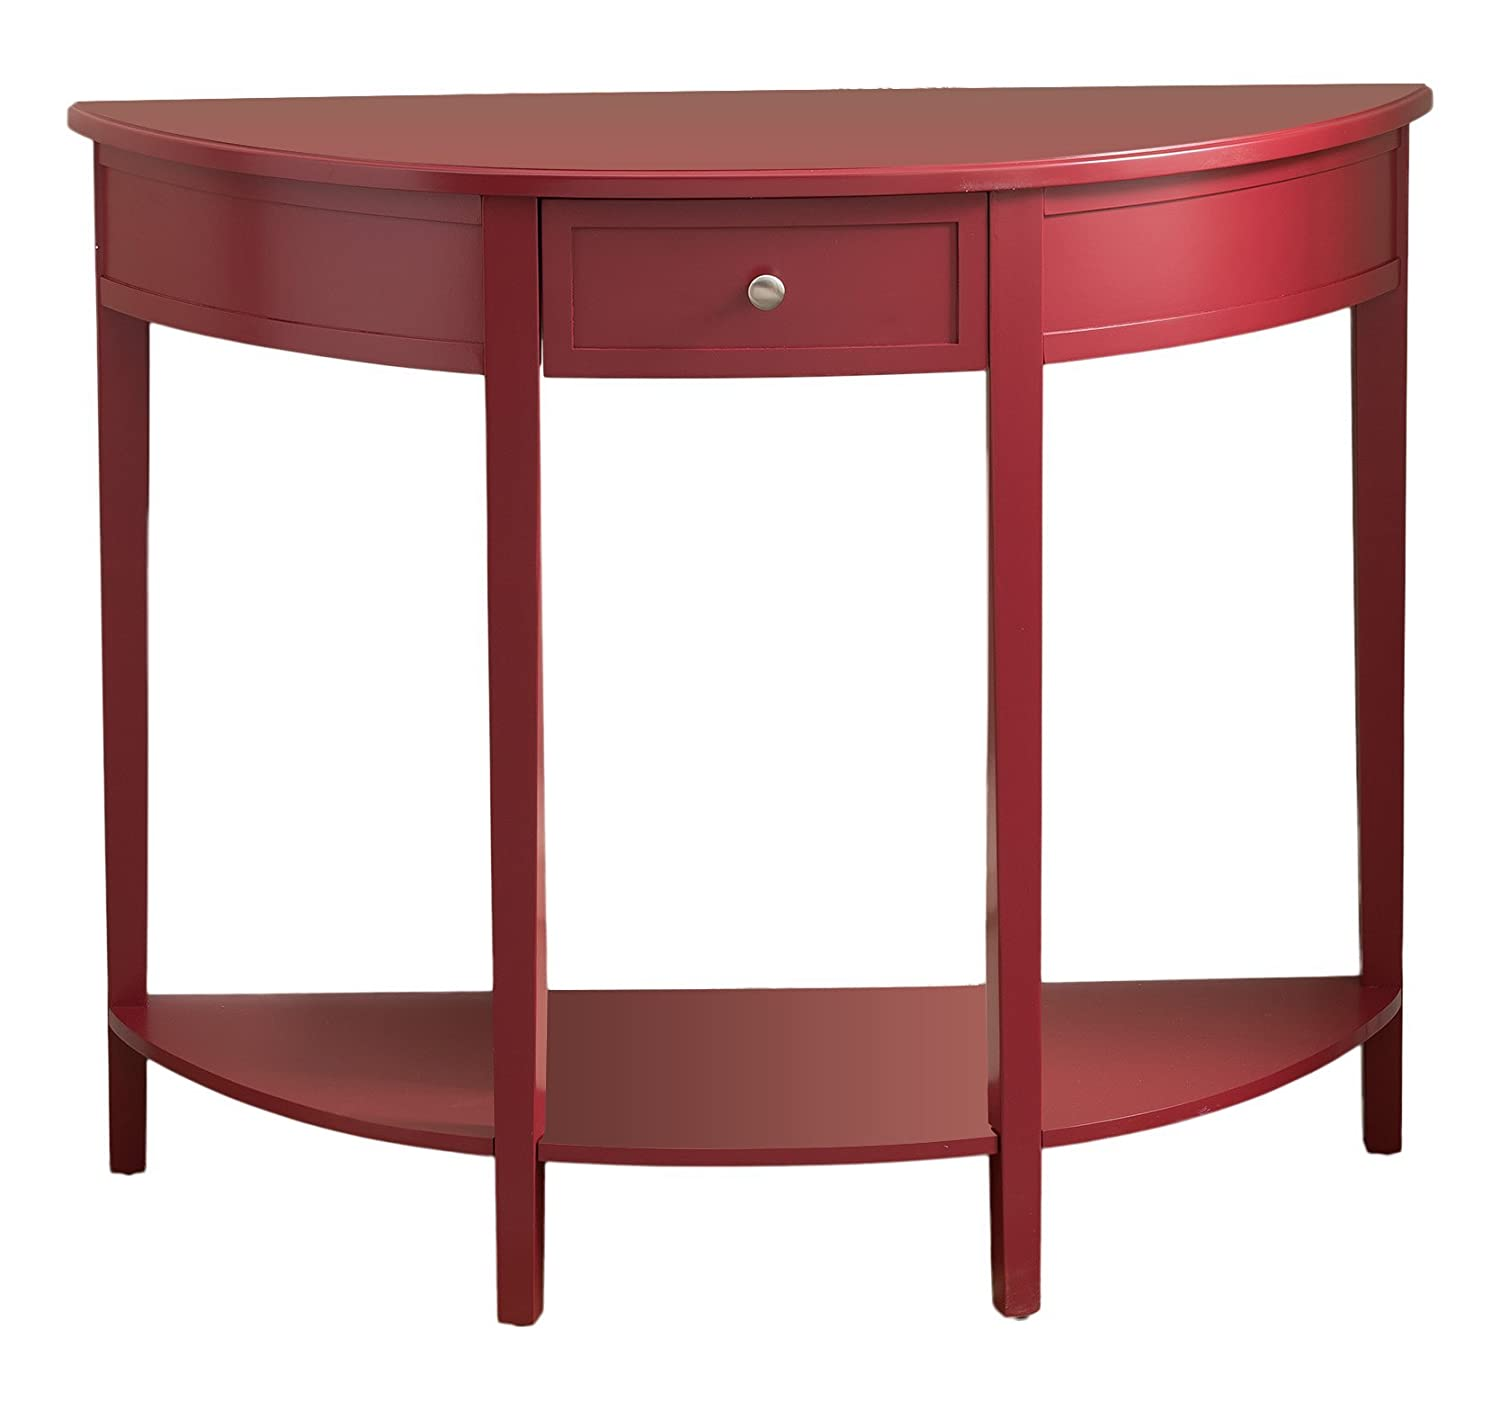 Amazon.com: Kings Brand Furniture Red Finish Wood Half Round ...